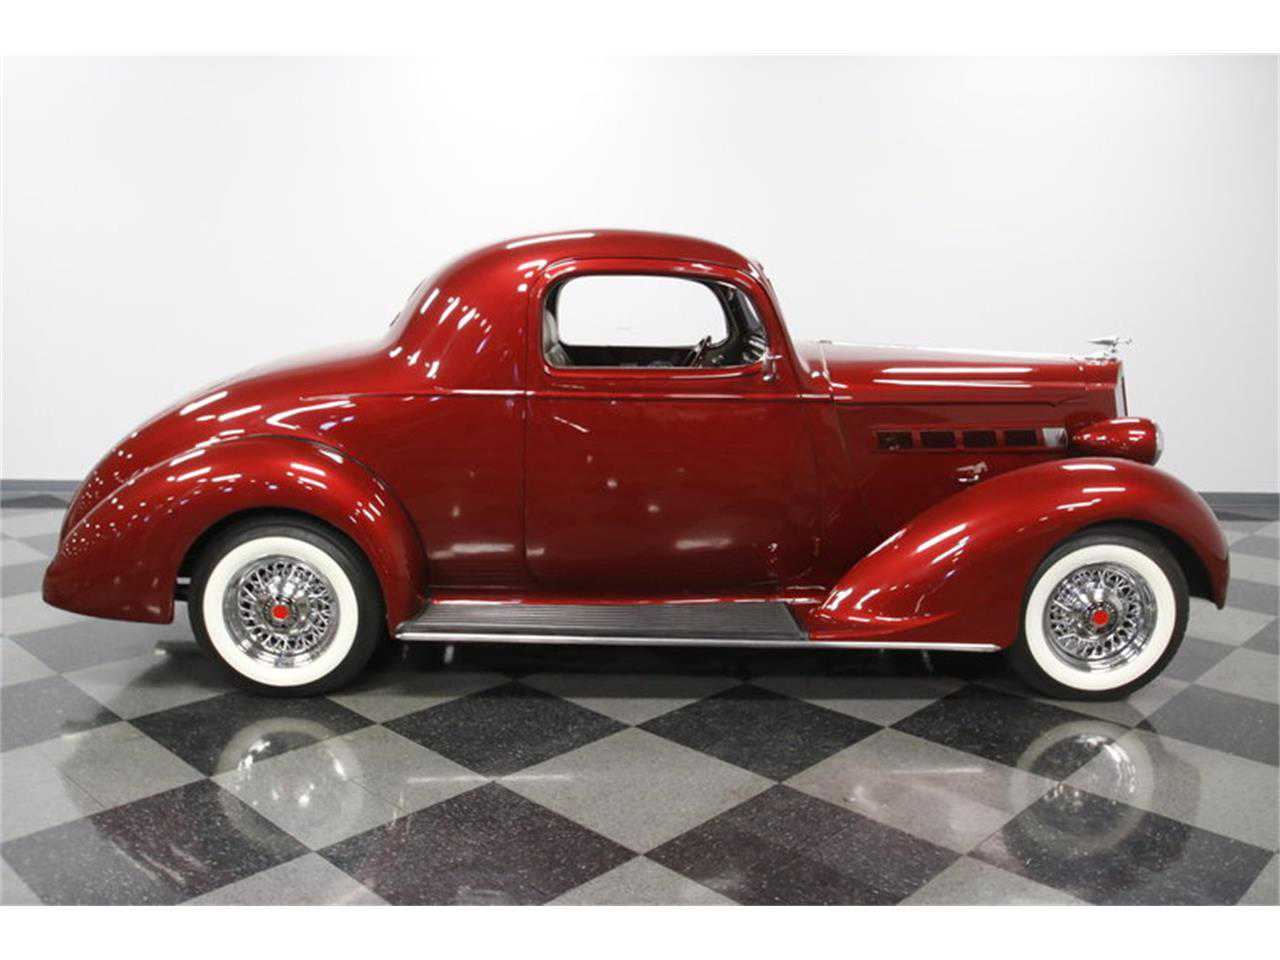 1937 Packard 115 Business Coupe Restomod for sale in Concord, NC